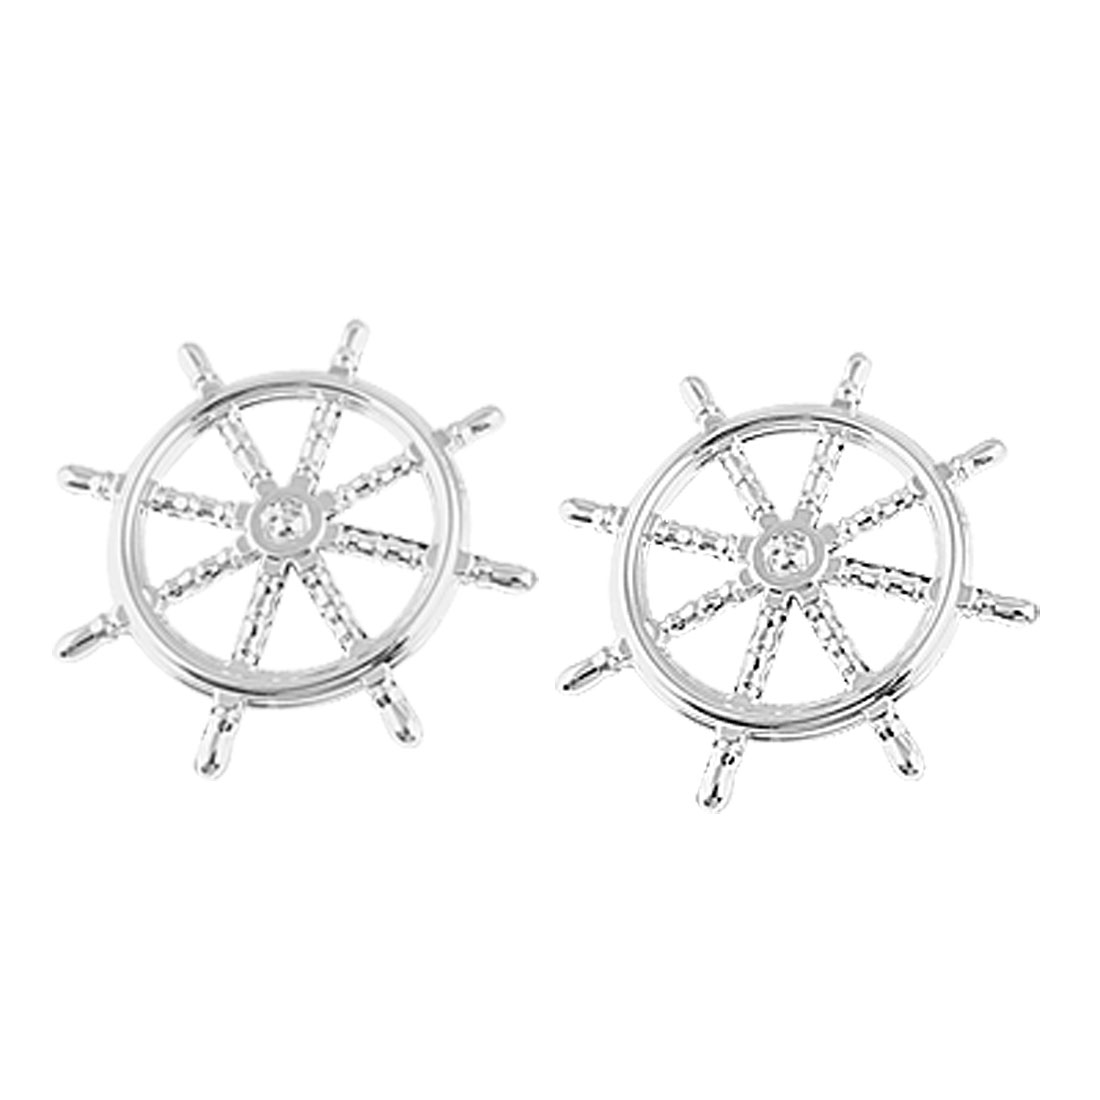 Car Exterior Plastic Ship Steering Wheel Sticker Decor 2 Pcs